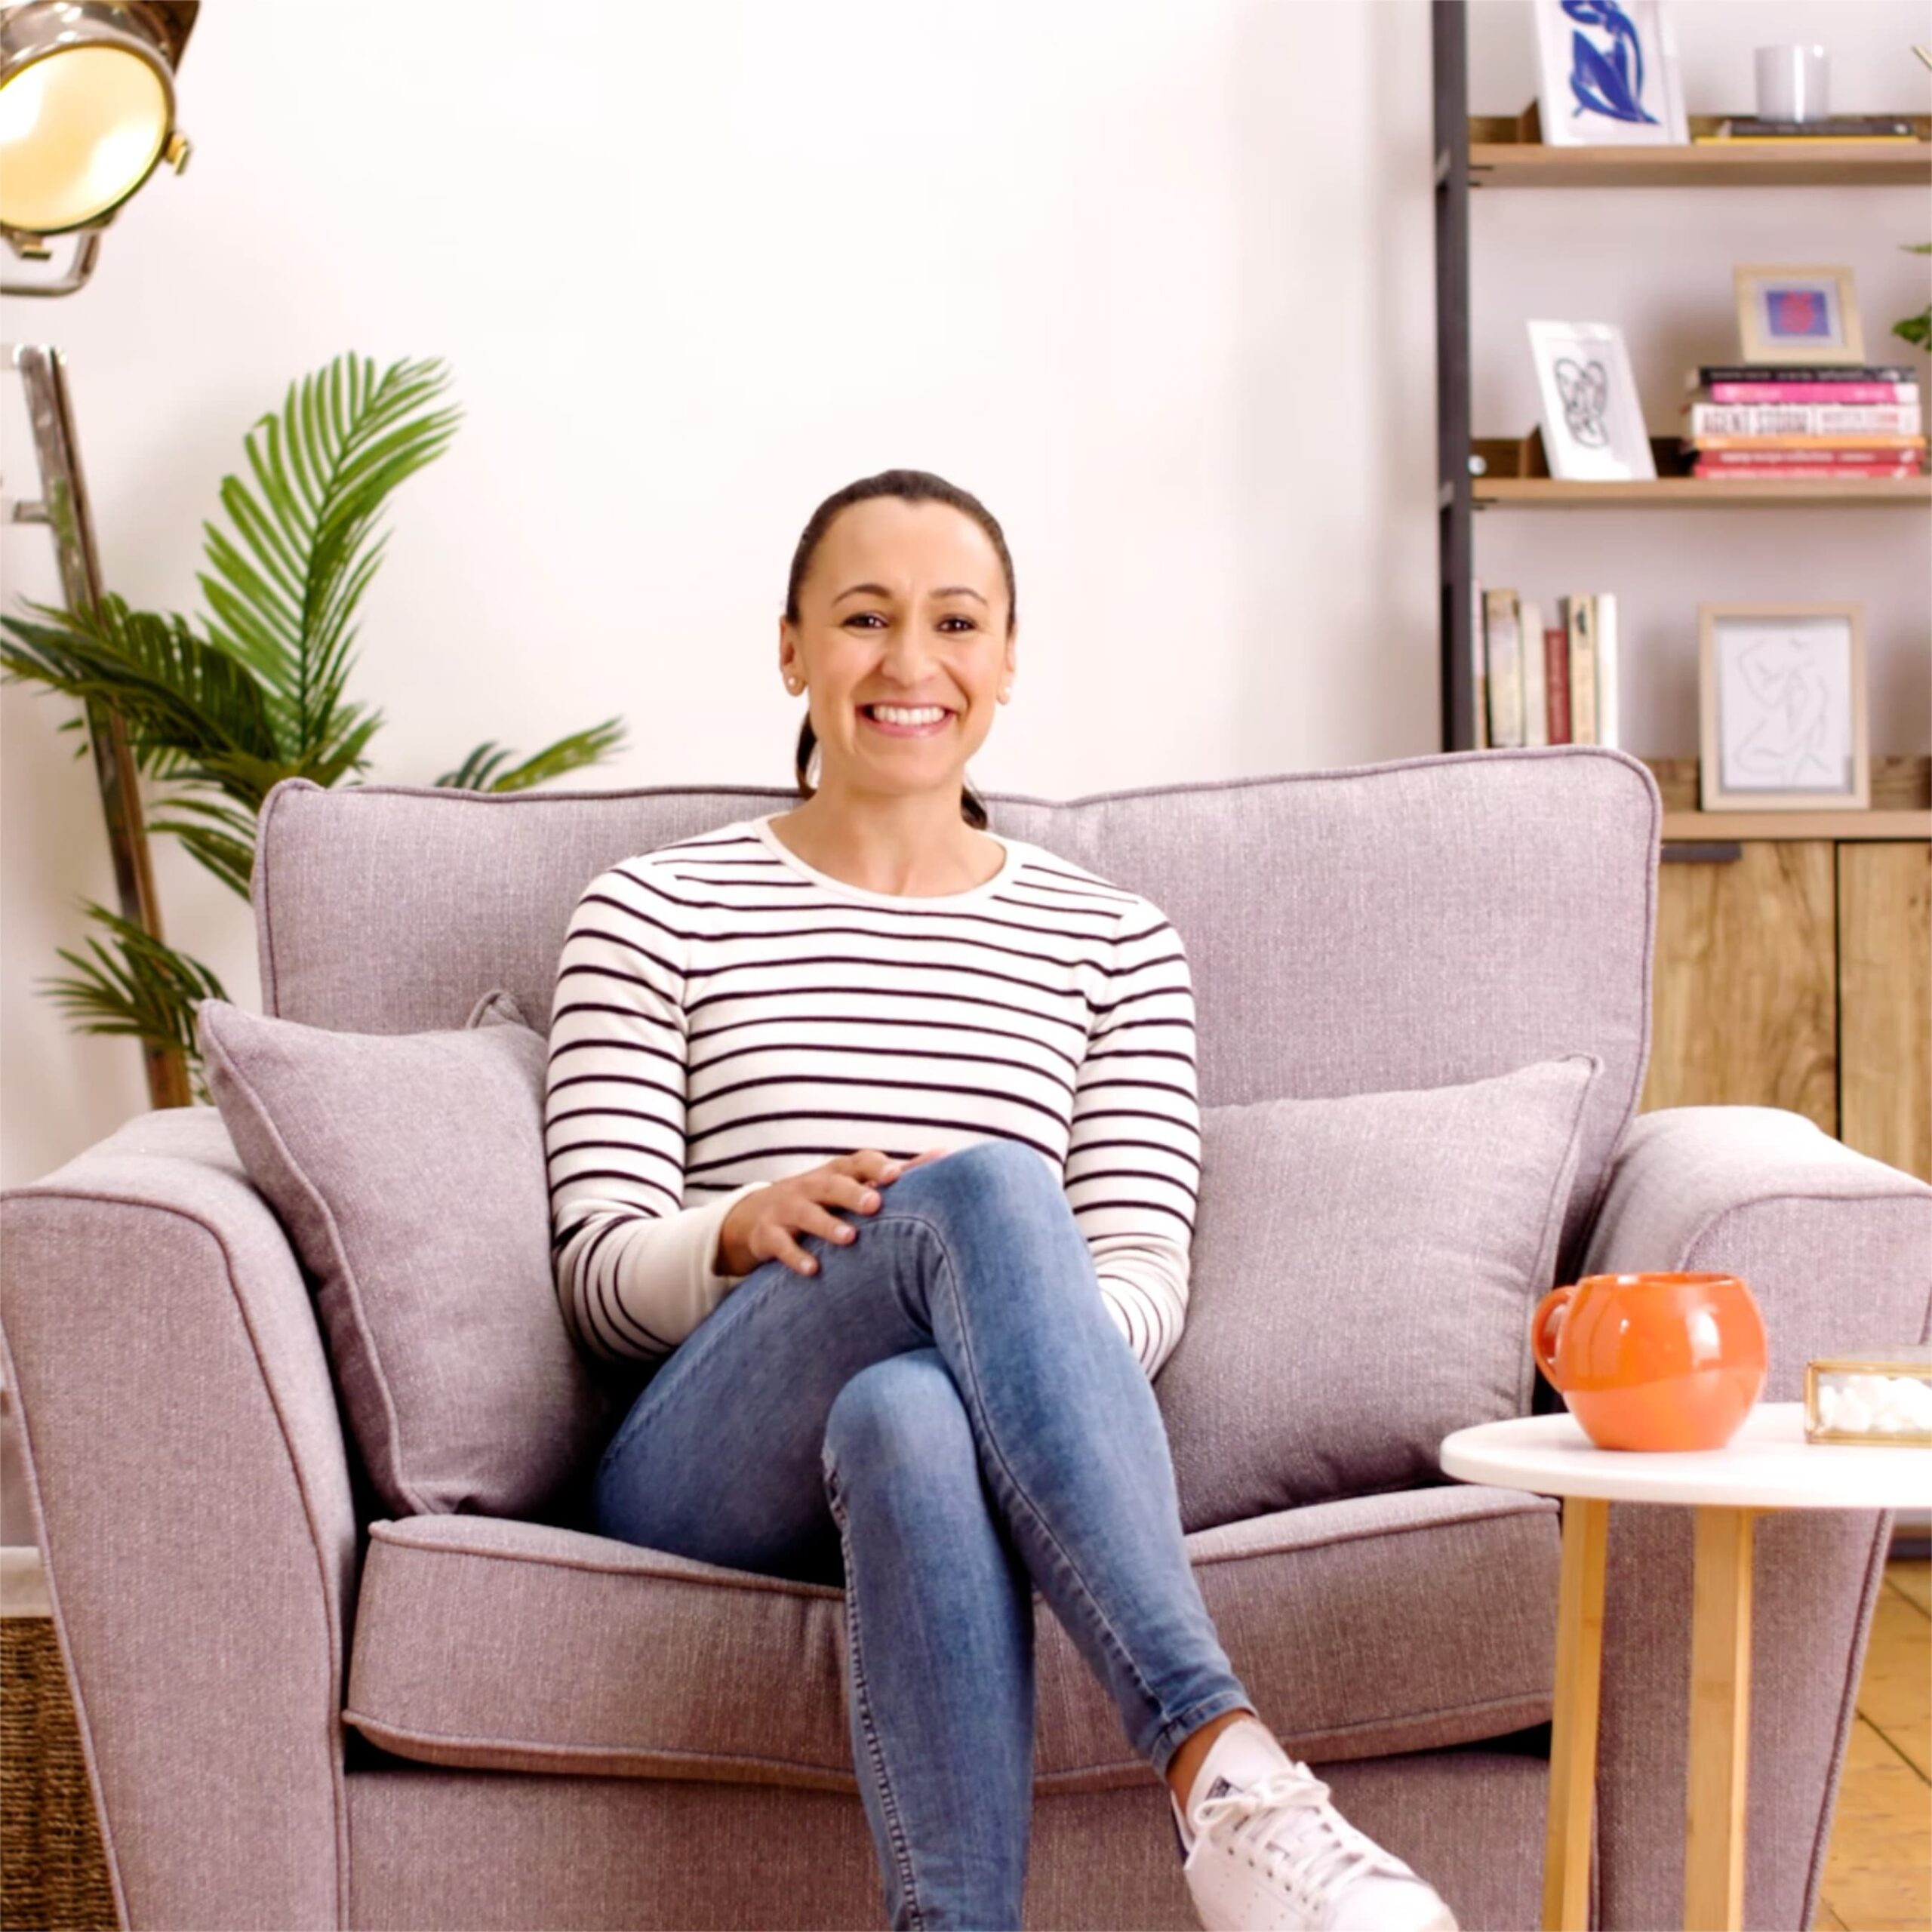 Dame Jessica Ennis-Hill interview